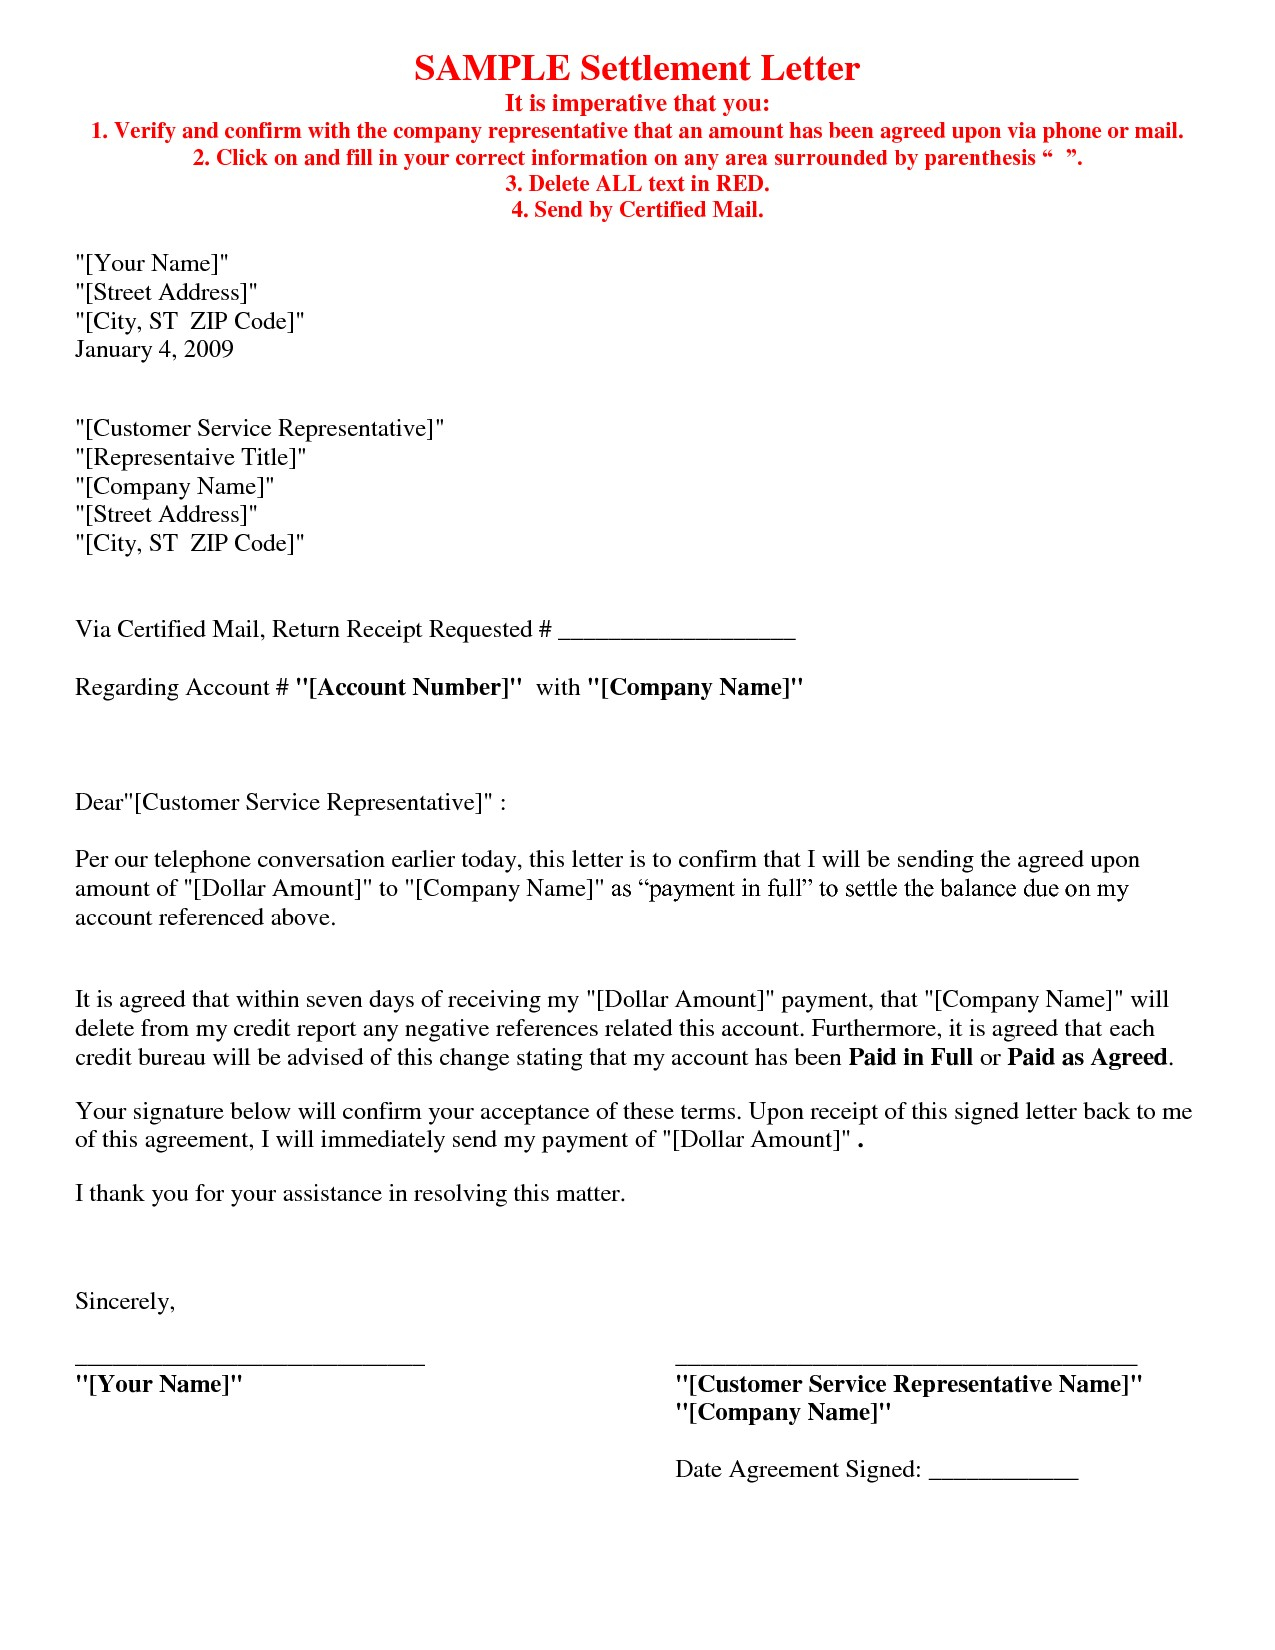 debt settlement agreement letter template Collection-Payment Agreement Letter Format Fresh Contract Letter Template Contract Approval Letter Template Letters 5-n